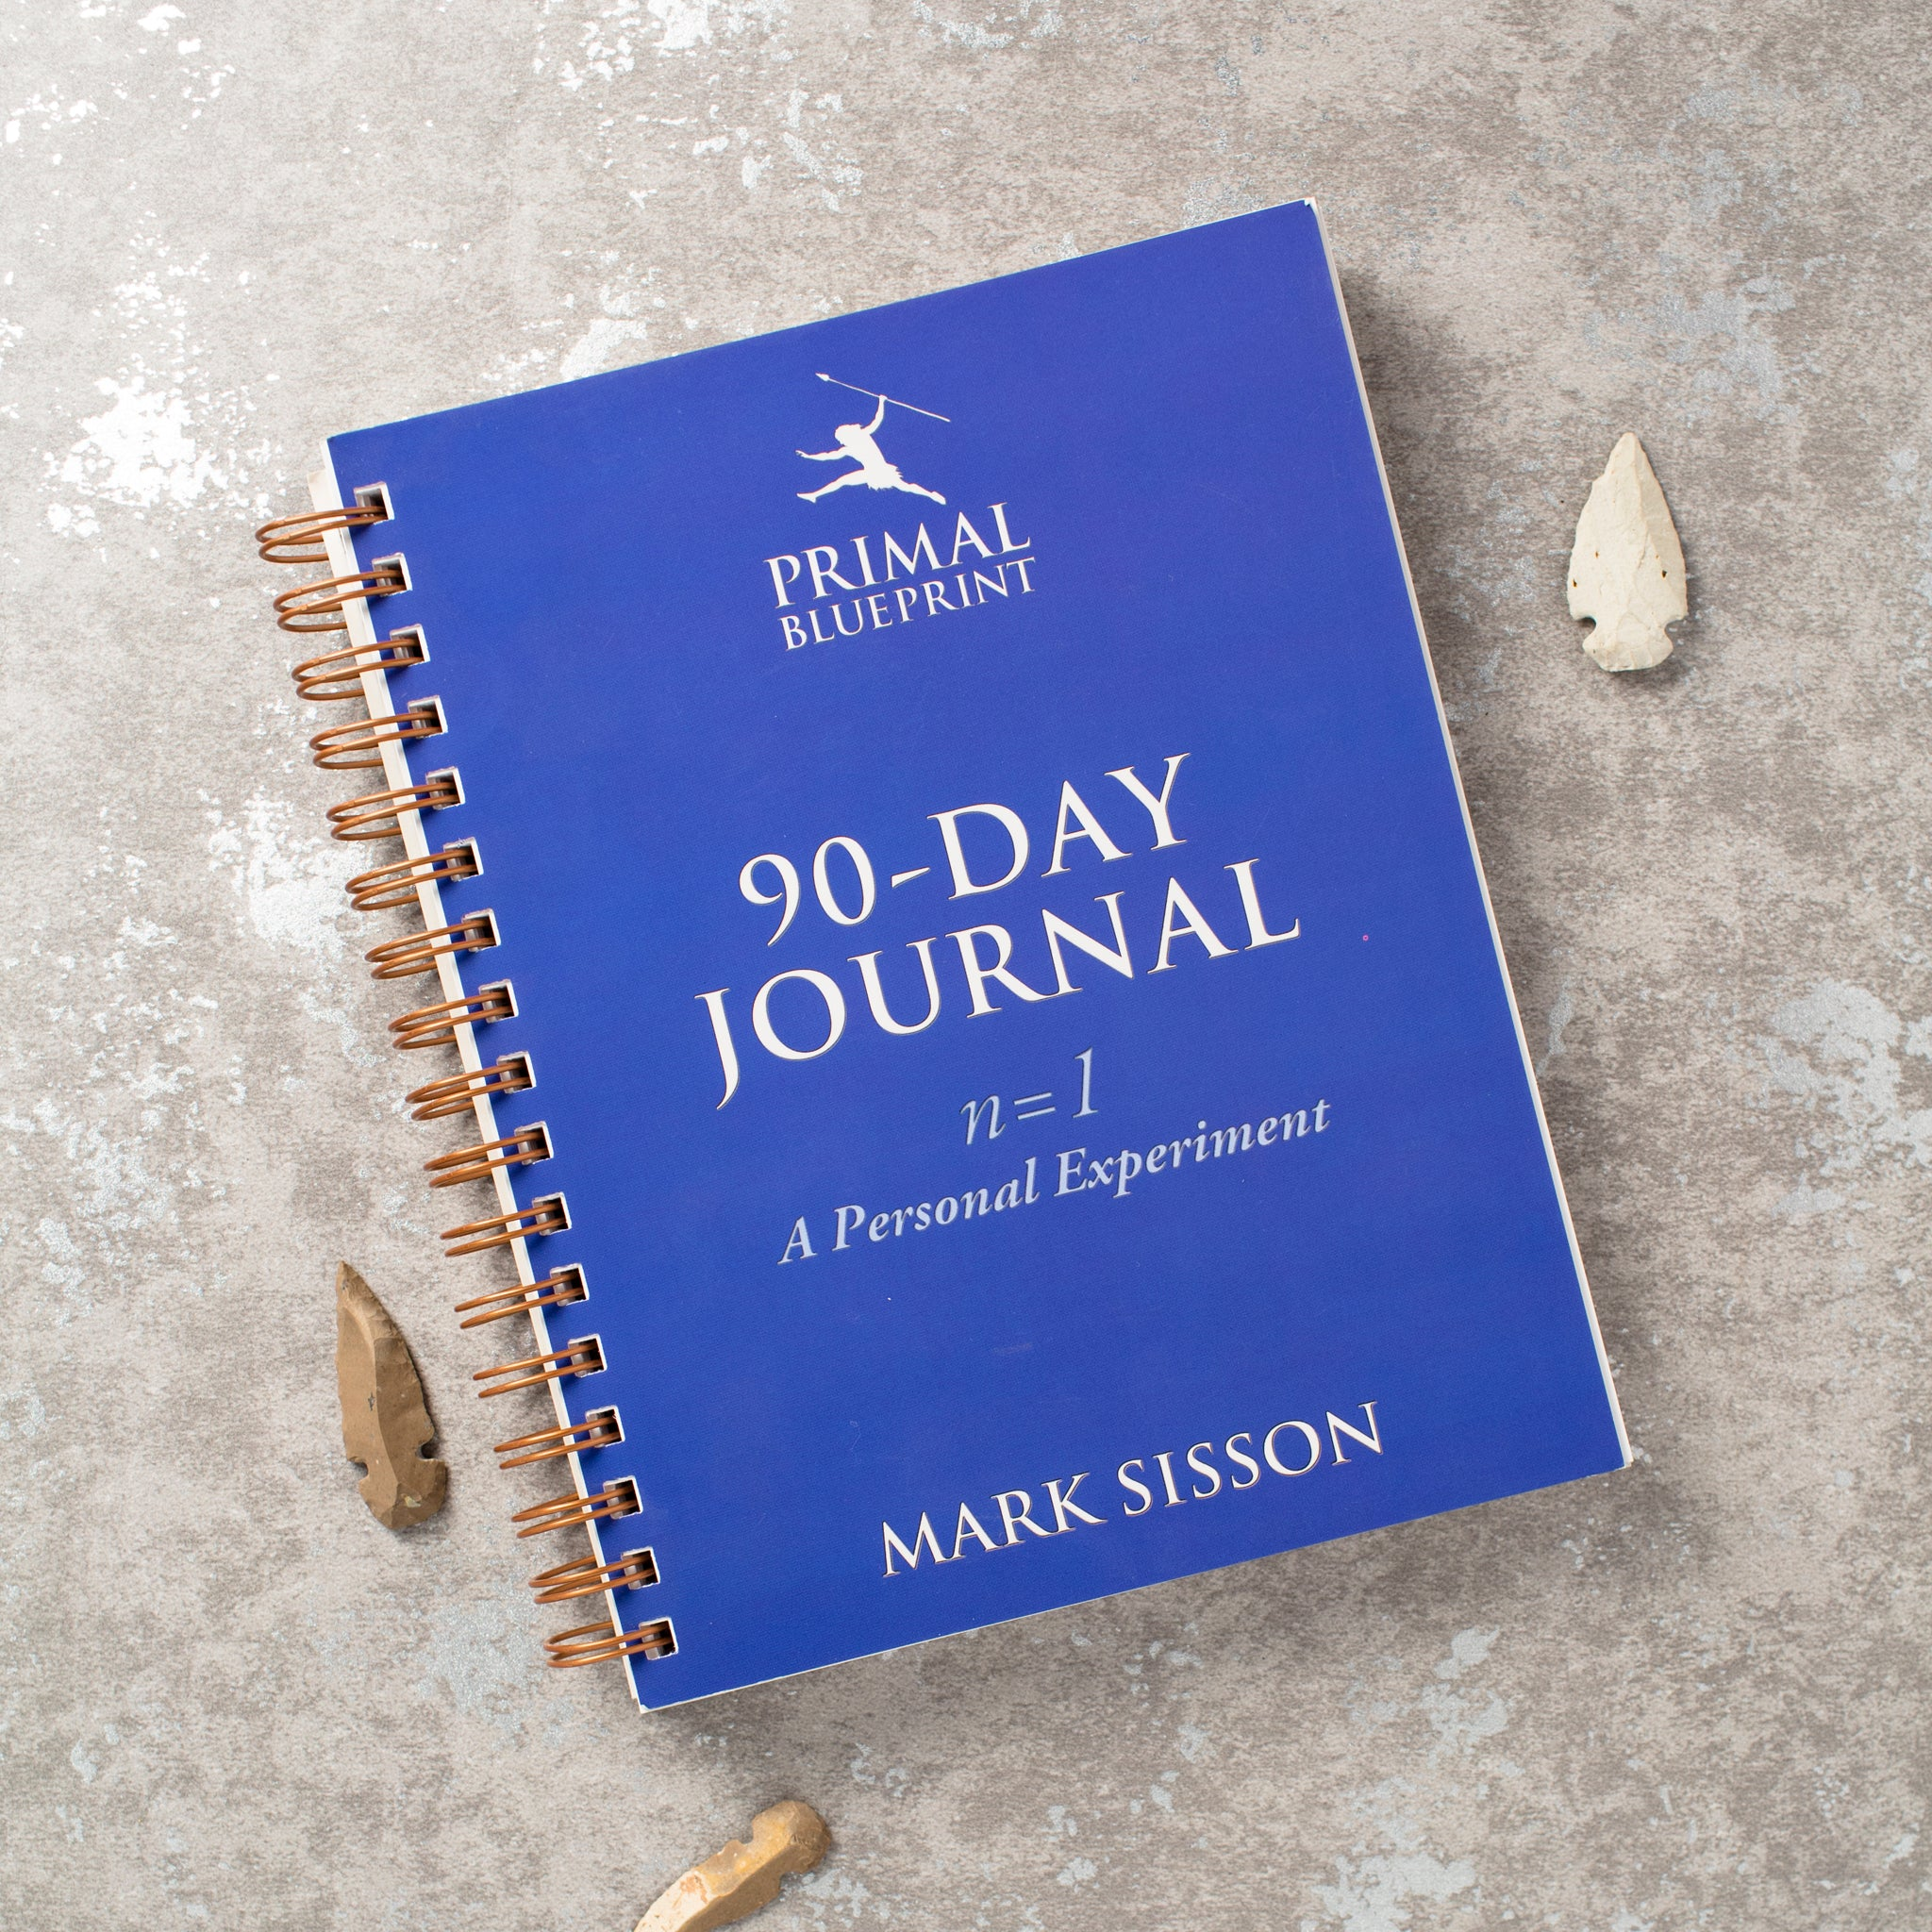 The primal blueprint 90 day journal malvernweather Gallery